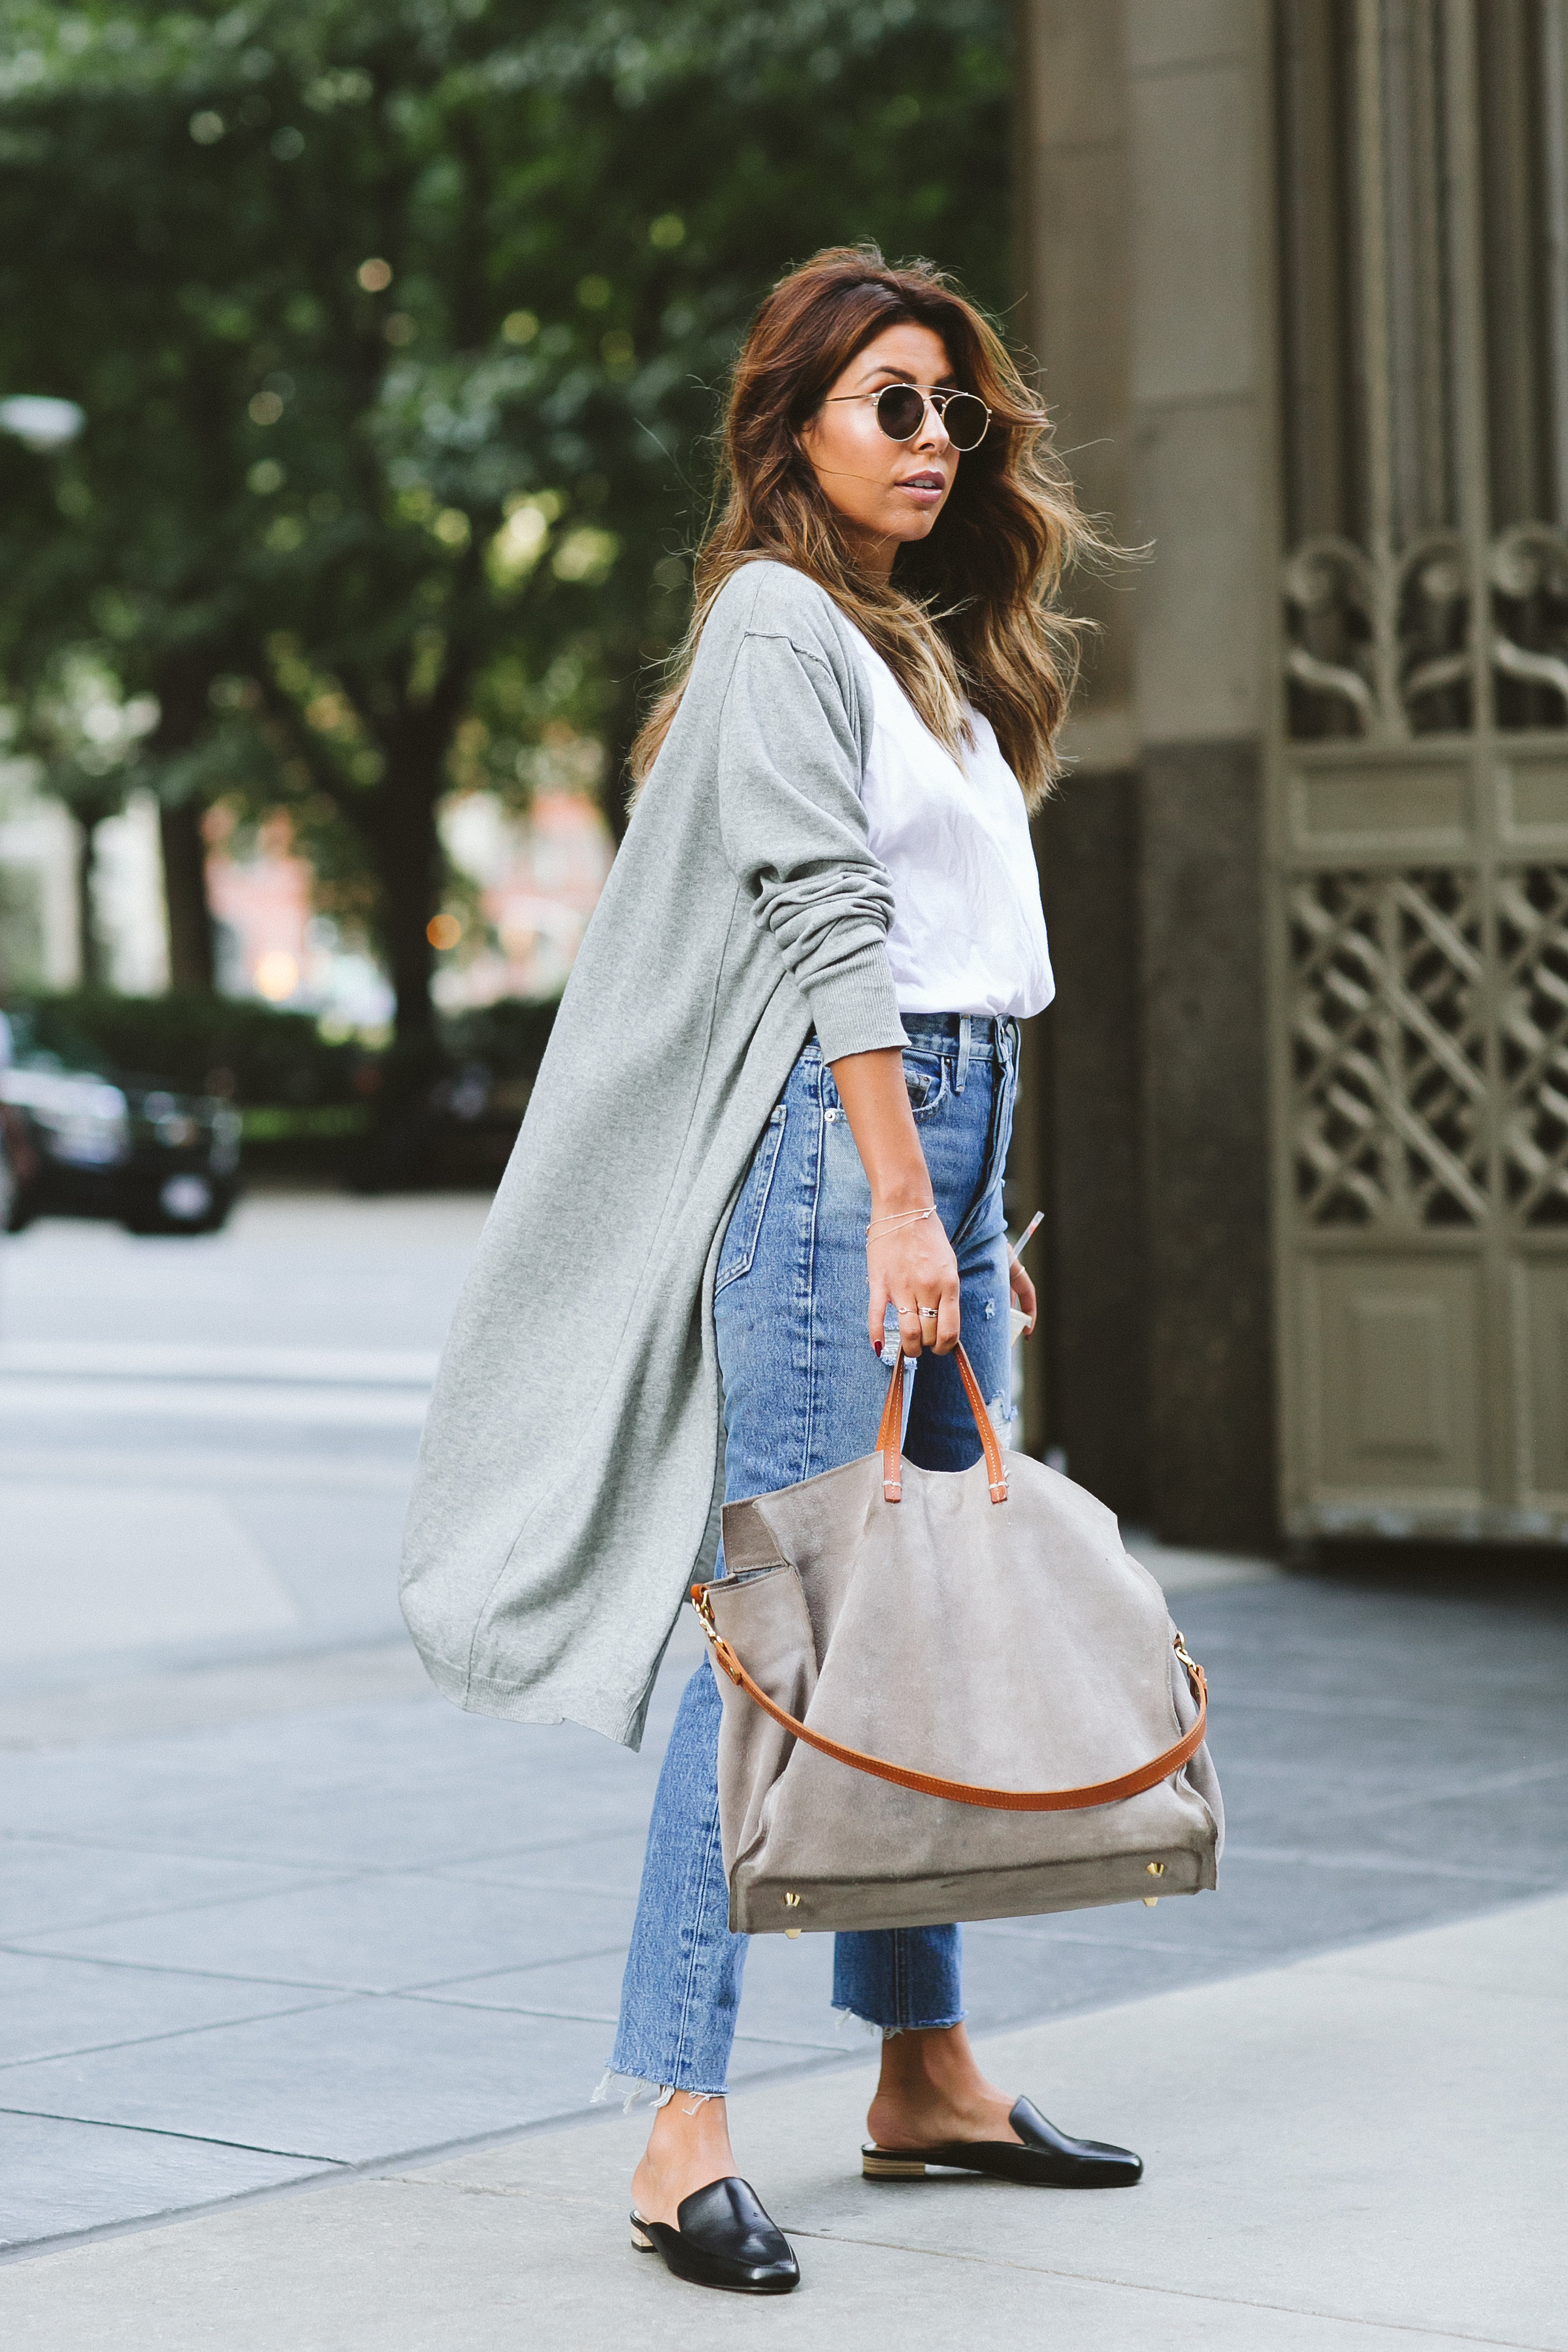 Everyday Pursuits in New York - casual fall style inpso